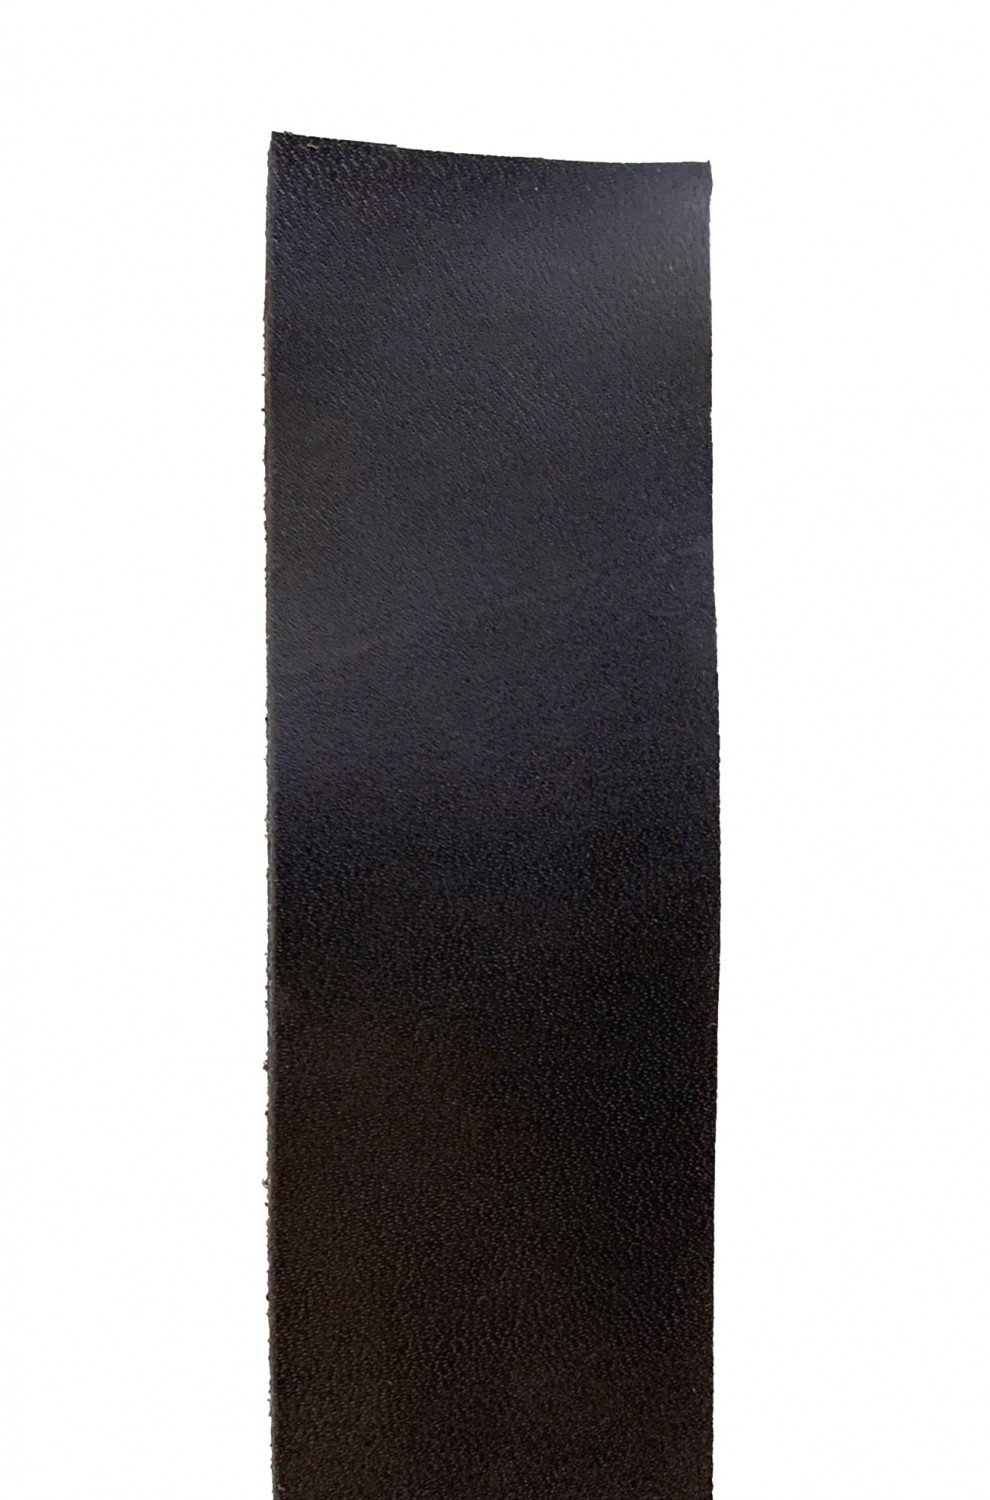 Leather Bag Strap Wide - Black (1.25 inch by 45 inch)